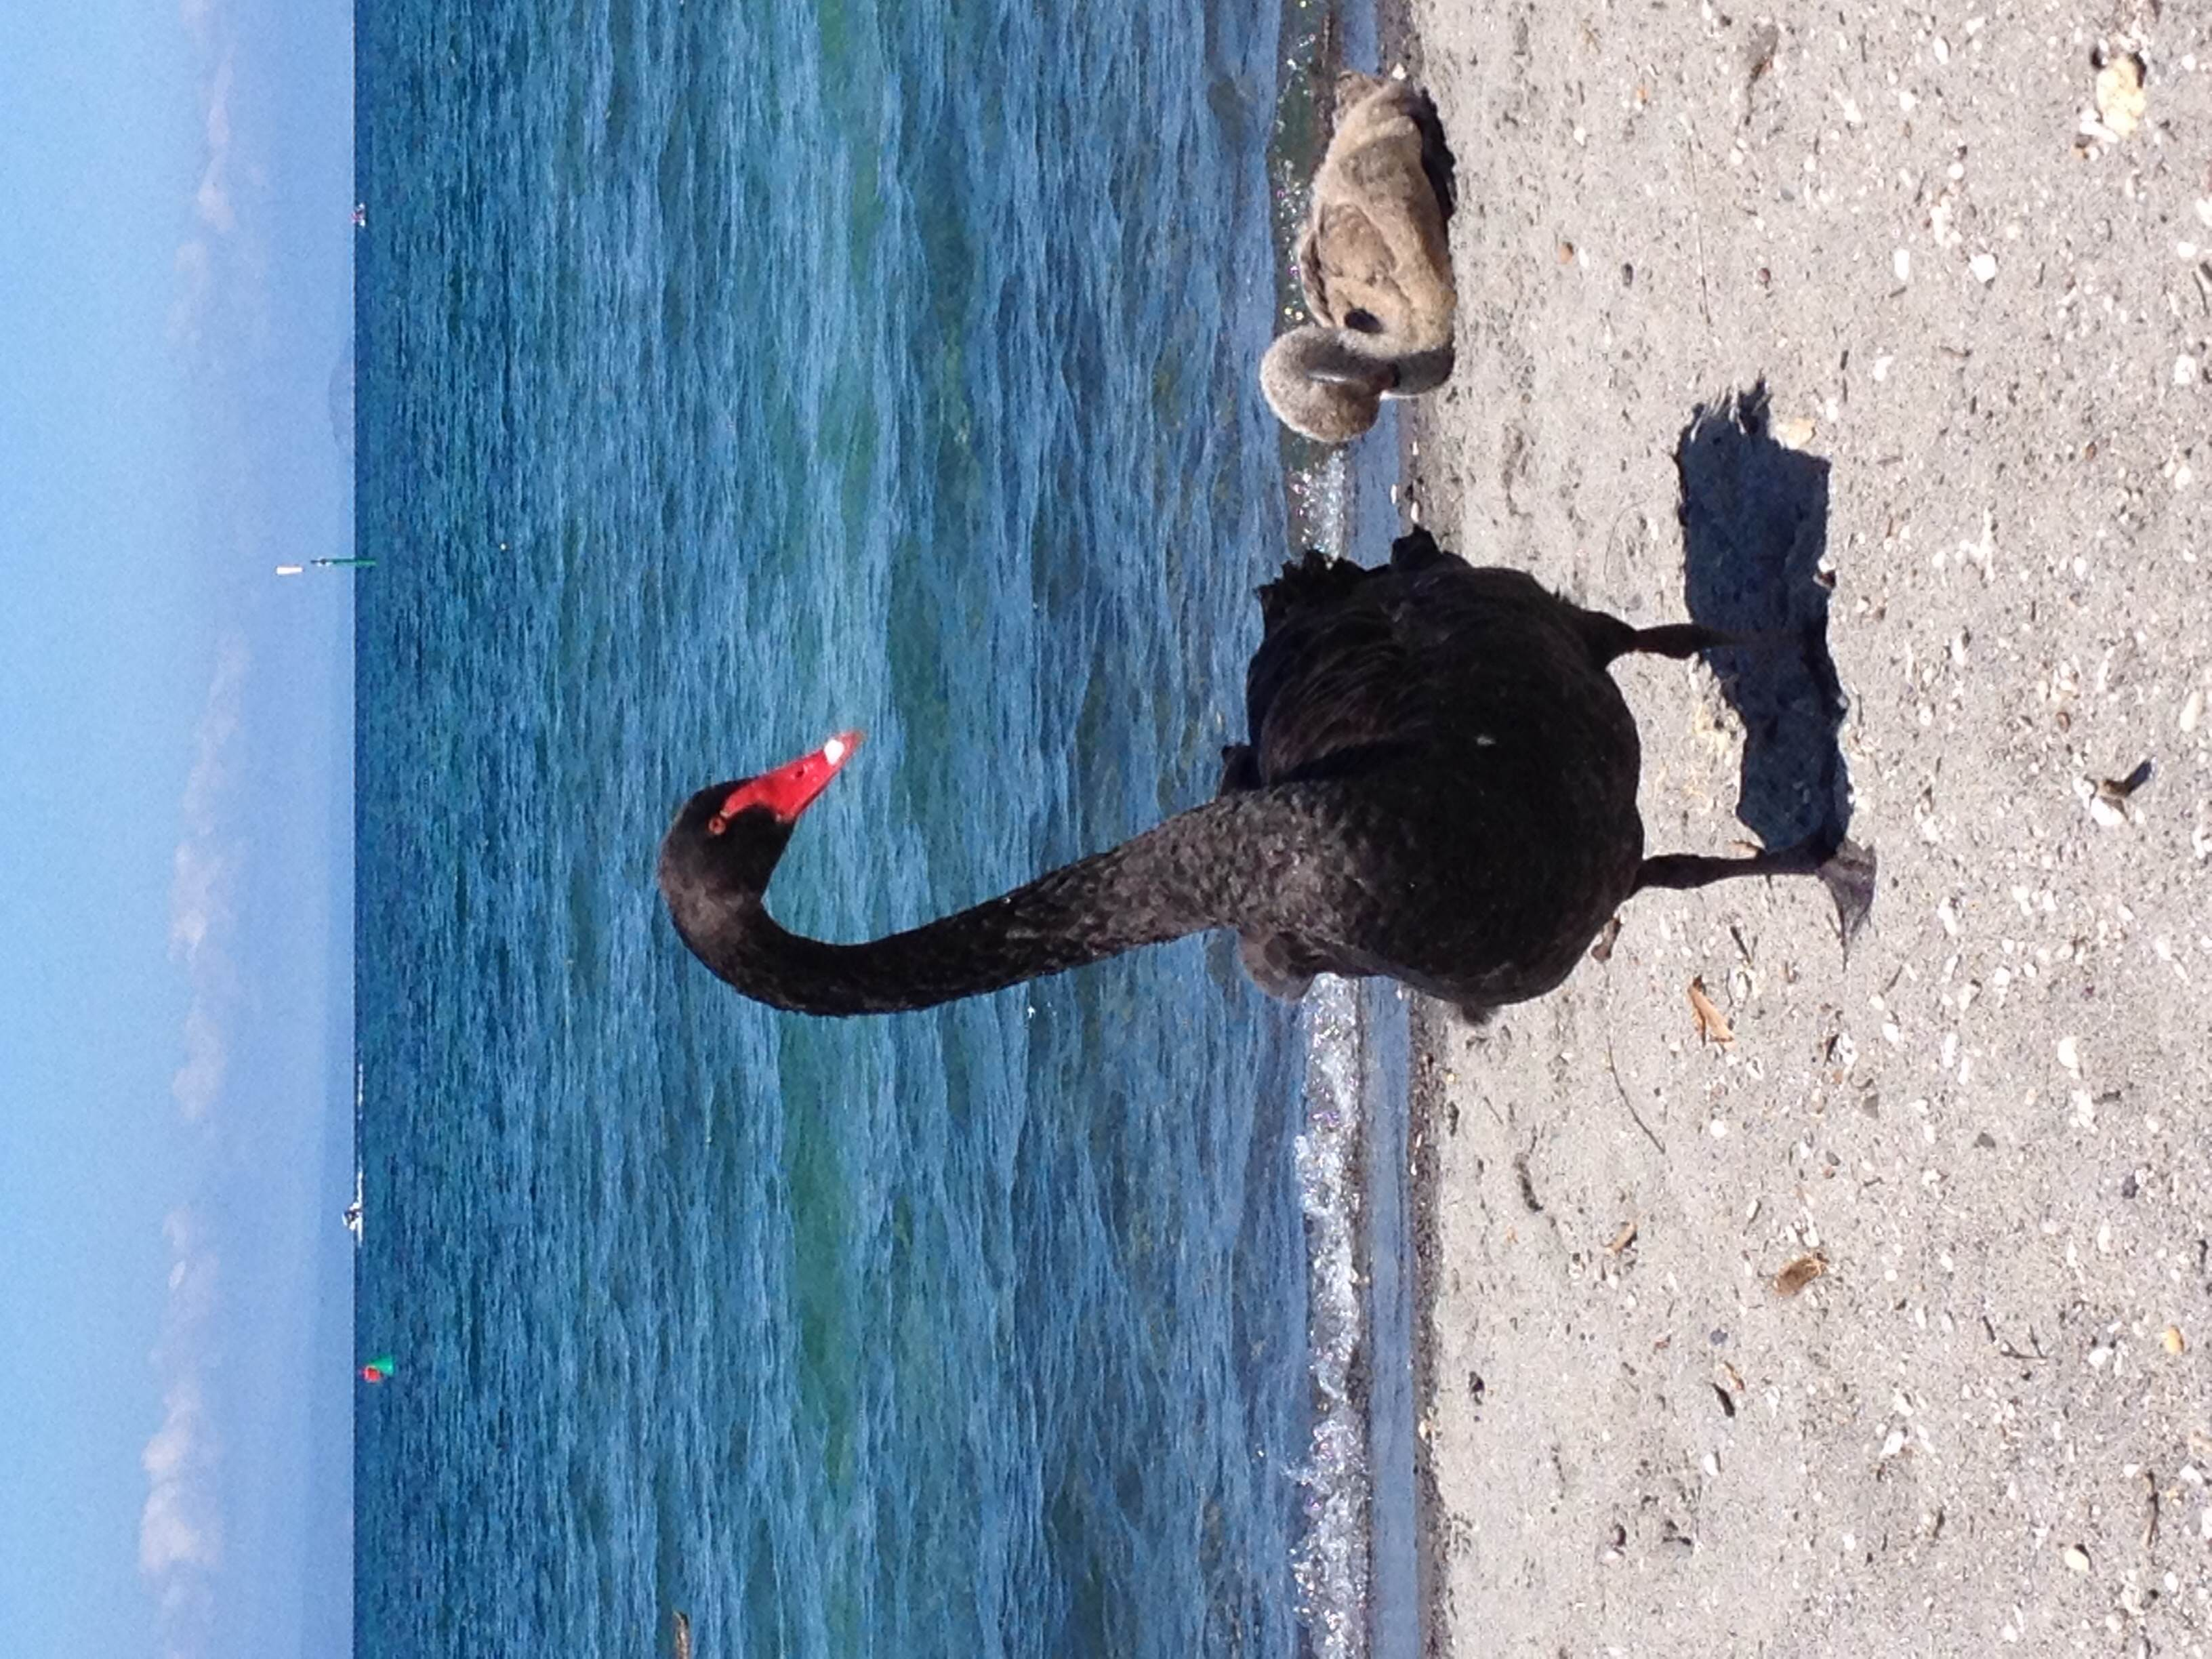 A black swan and chick on the shore of Lake Taupo, New Zealand.